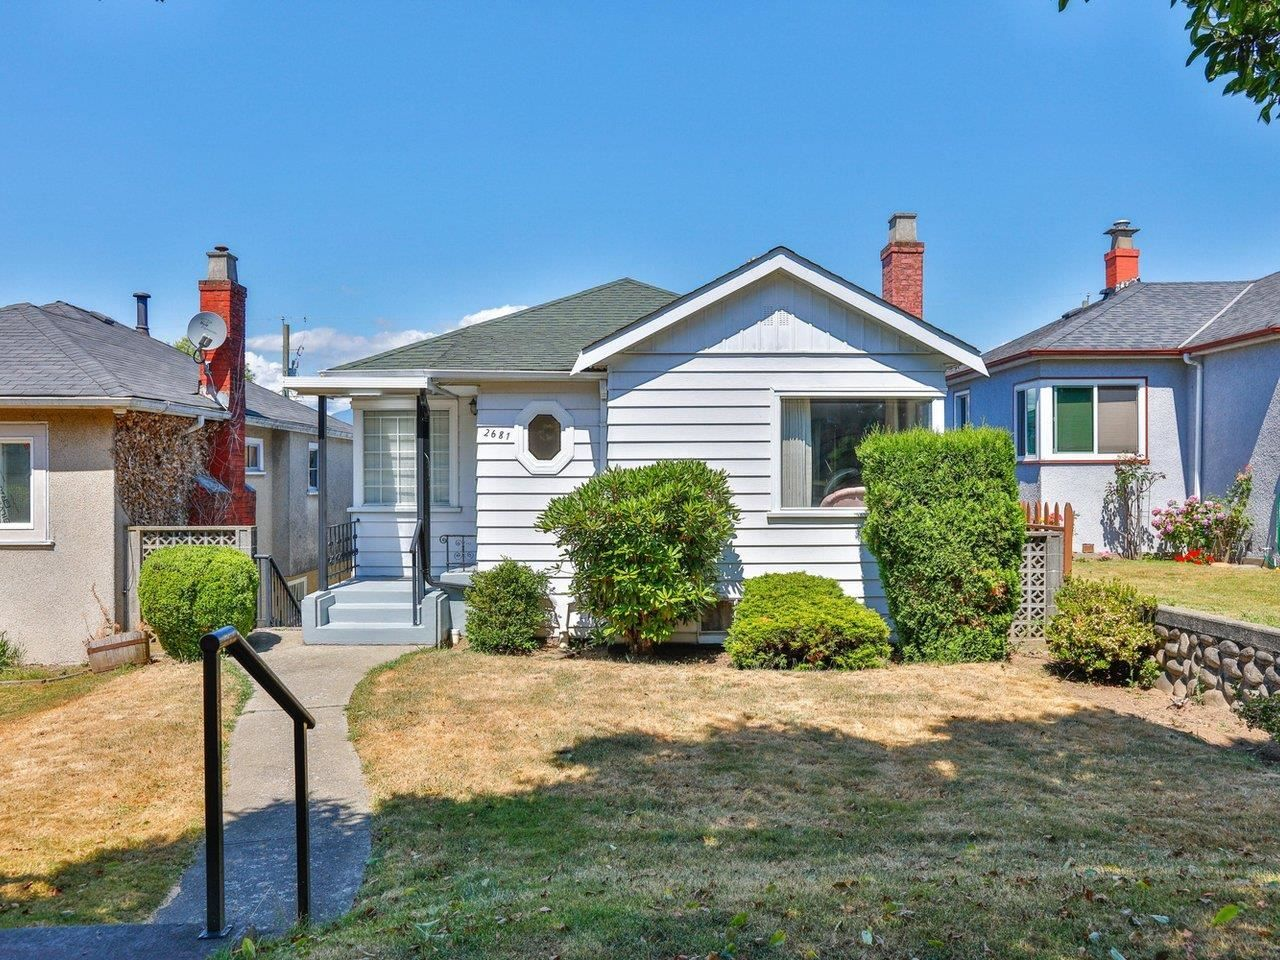 Main Photo: 2681 E 4TH Avenue in Vancouver: Renfrew VE House for sale (Vancouver East)  : MLS®# R2605962